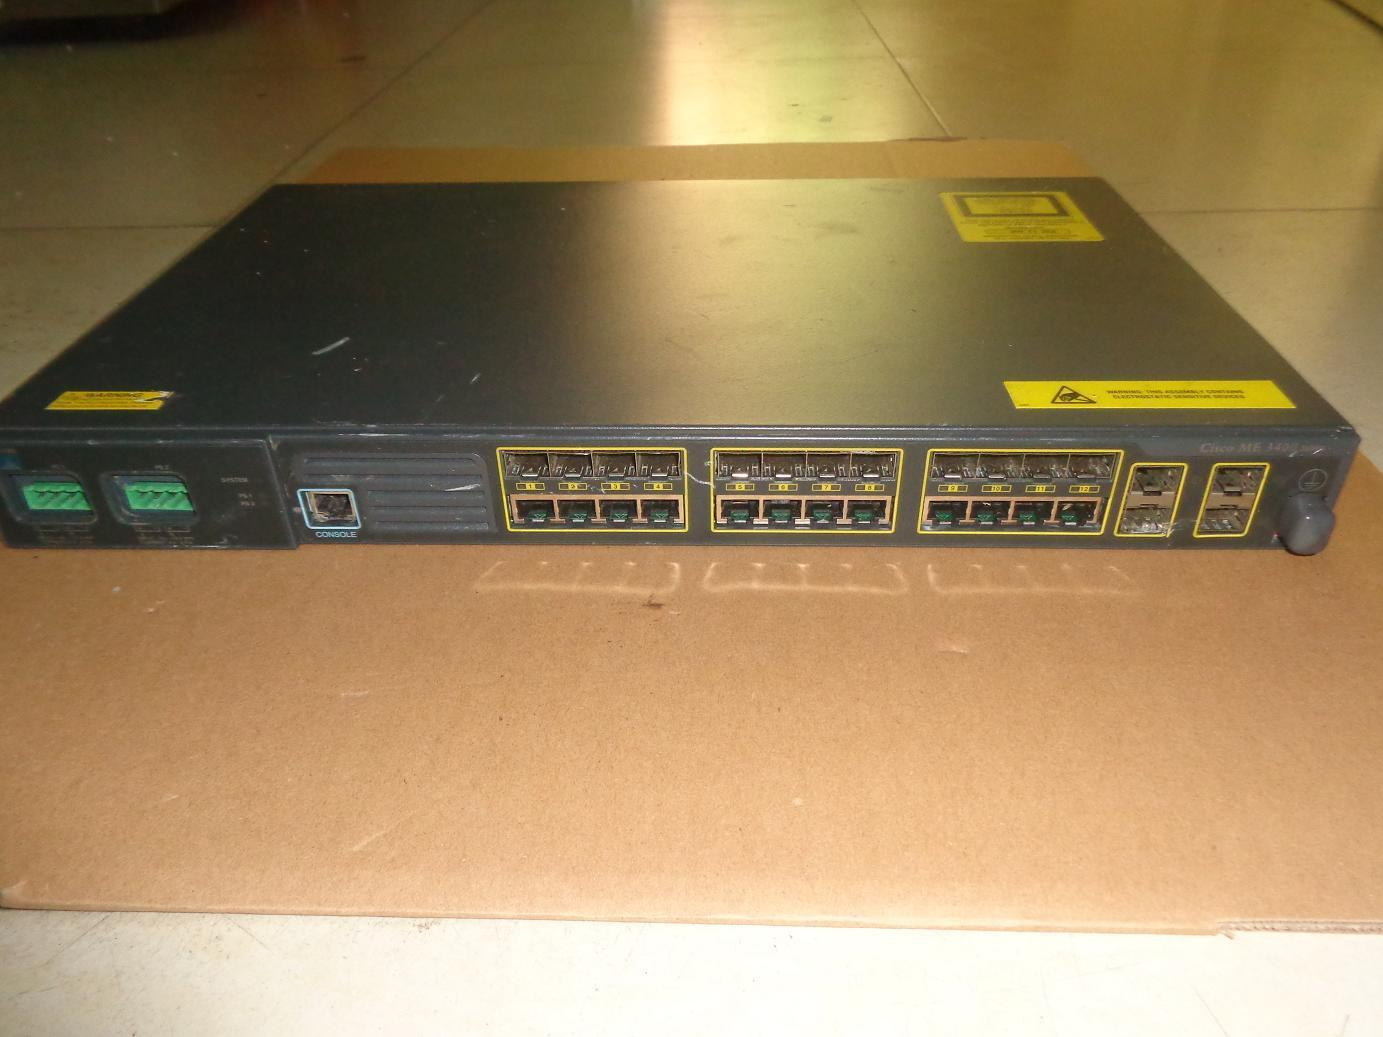 Cisco ME-3400G-12CS-D 12-Port Gb SFP Ethernet Access Switch DC Power Supply